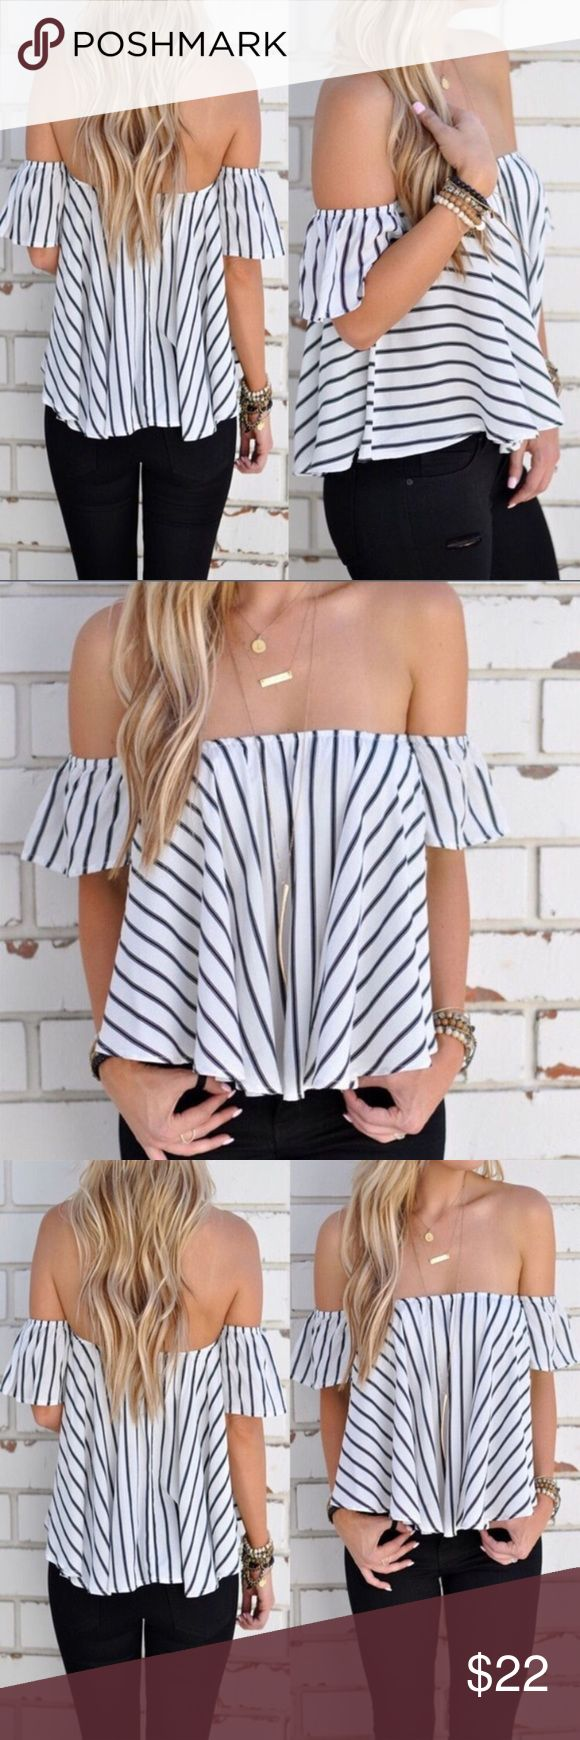 More coming soon Off The Shoulder Top More coming soon! Please like this listing if you want to be notified when the top is back in stock   5⭐️ Rated!  Gorgeous off the shoulder top for this summer. Wear it casually or dress it up for a fun night on the town! Smoke and Pet Free Home. Price firm unless bundled. Bundle and save! Tops